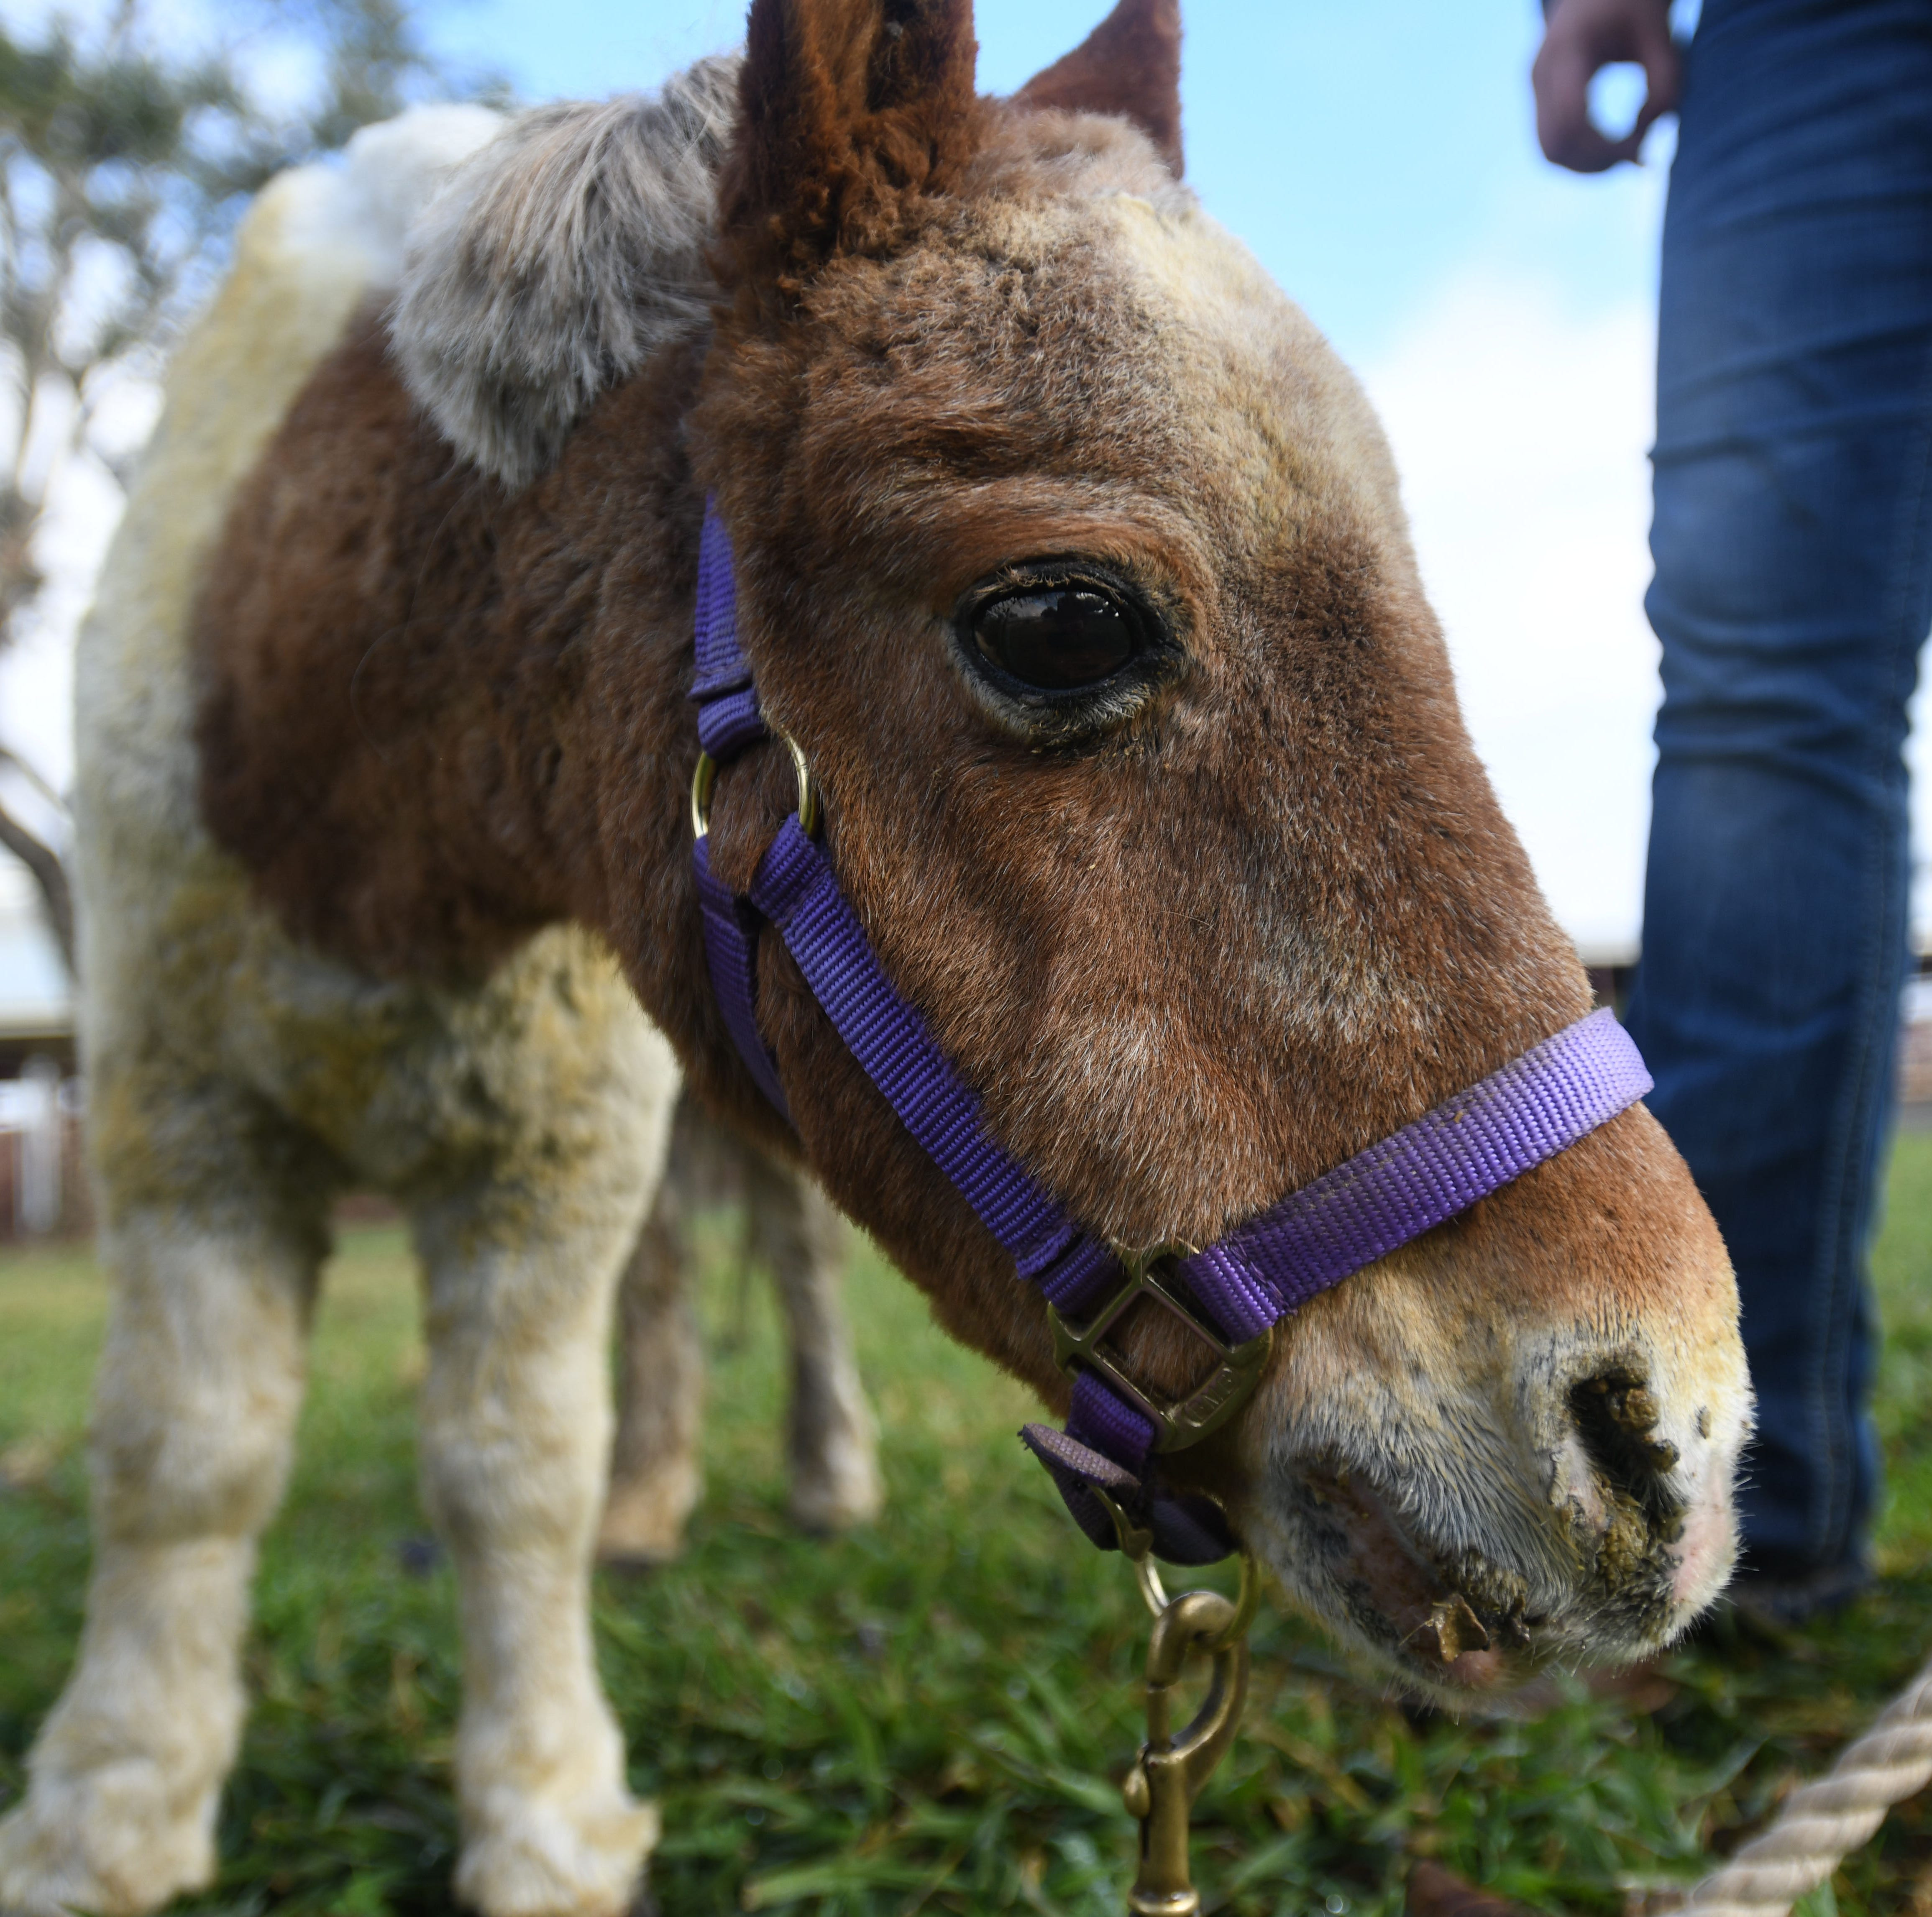 His home and pasture were destroyed, but this mini-horse survived California's Camp Fire